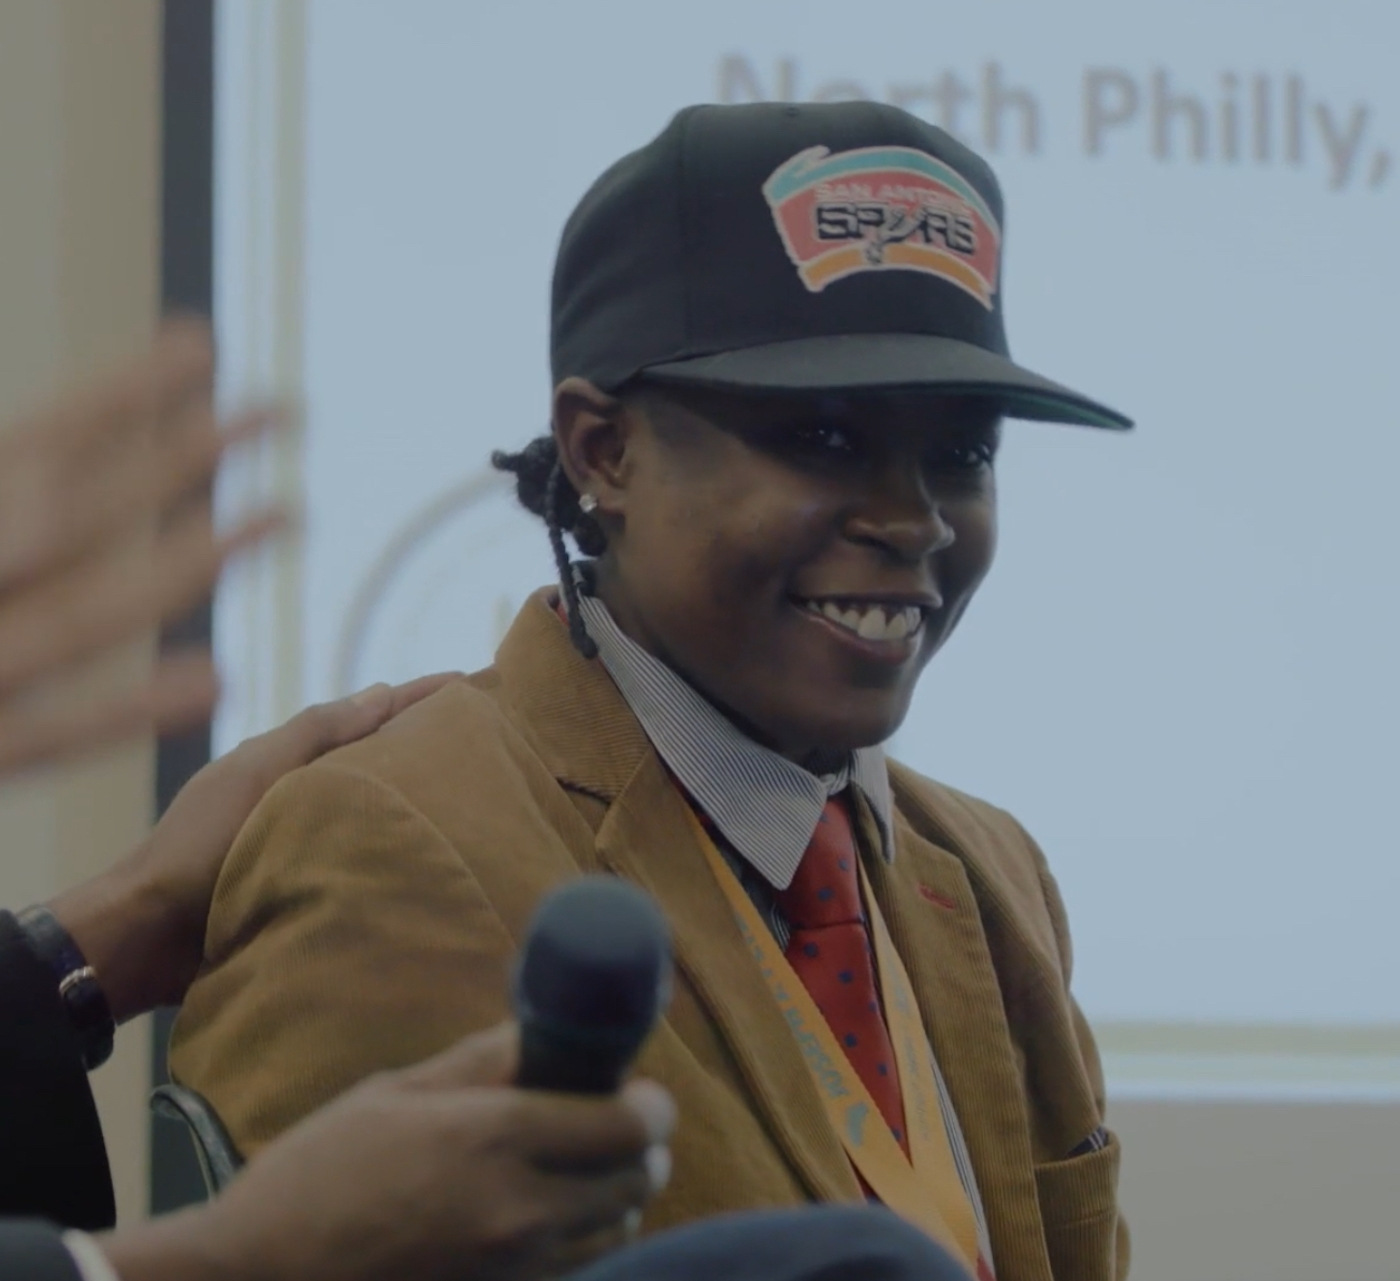 LaTonya Myers, in a San Antonio Spurs hat, celebrates a job offer, in Philly D.A.